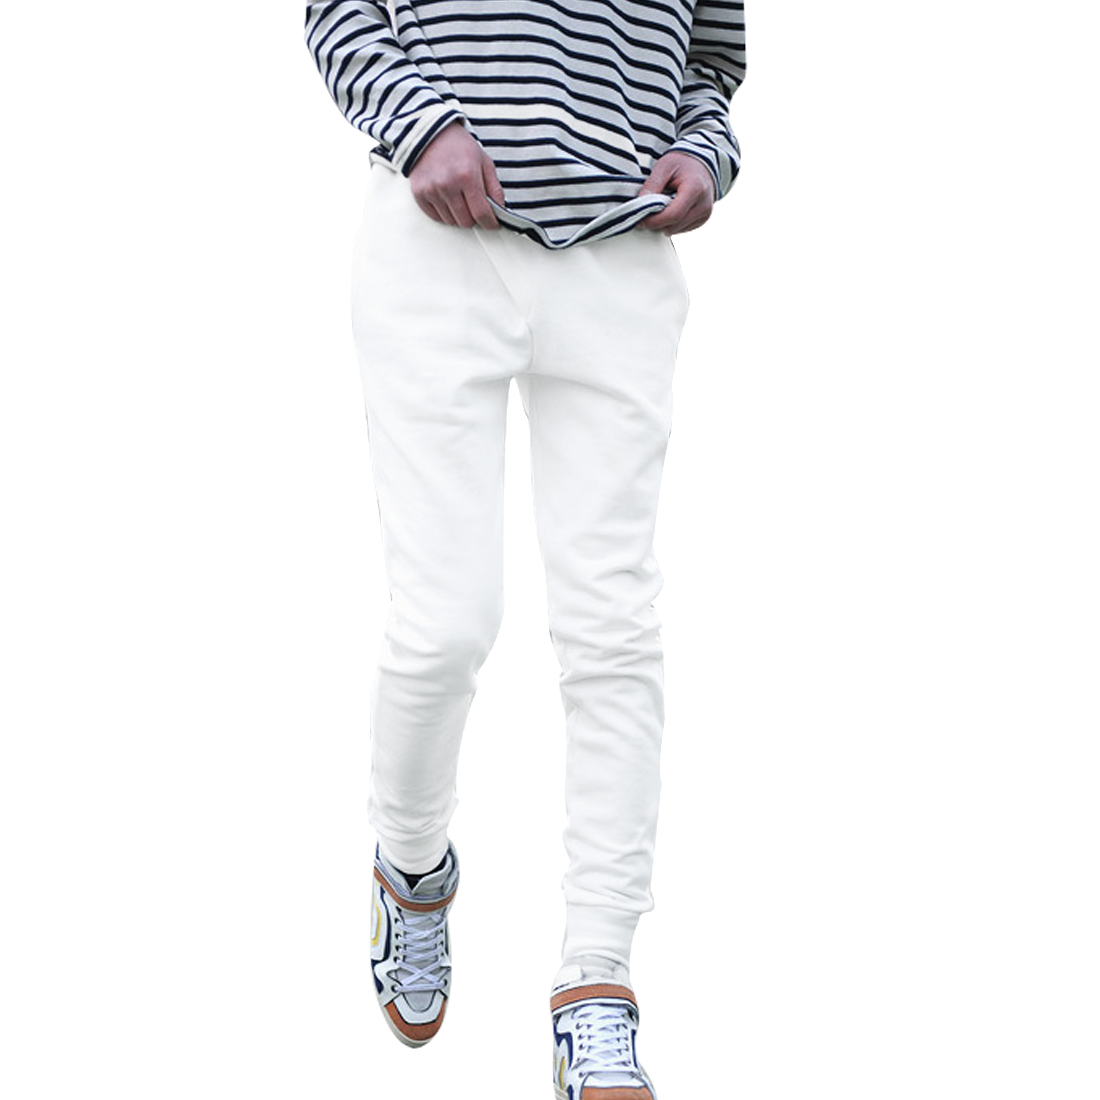 NEWS Men Stretchy Waist Pockets Front Casual Pants White W27